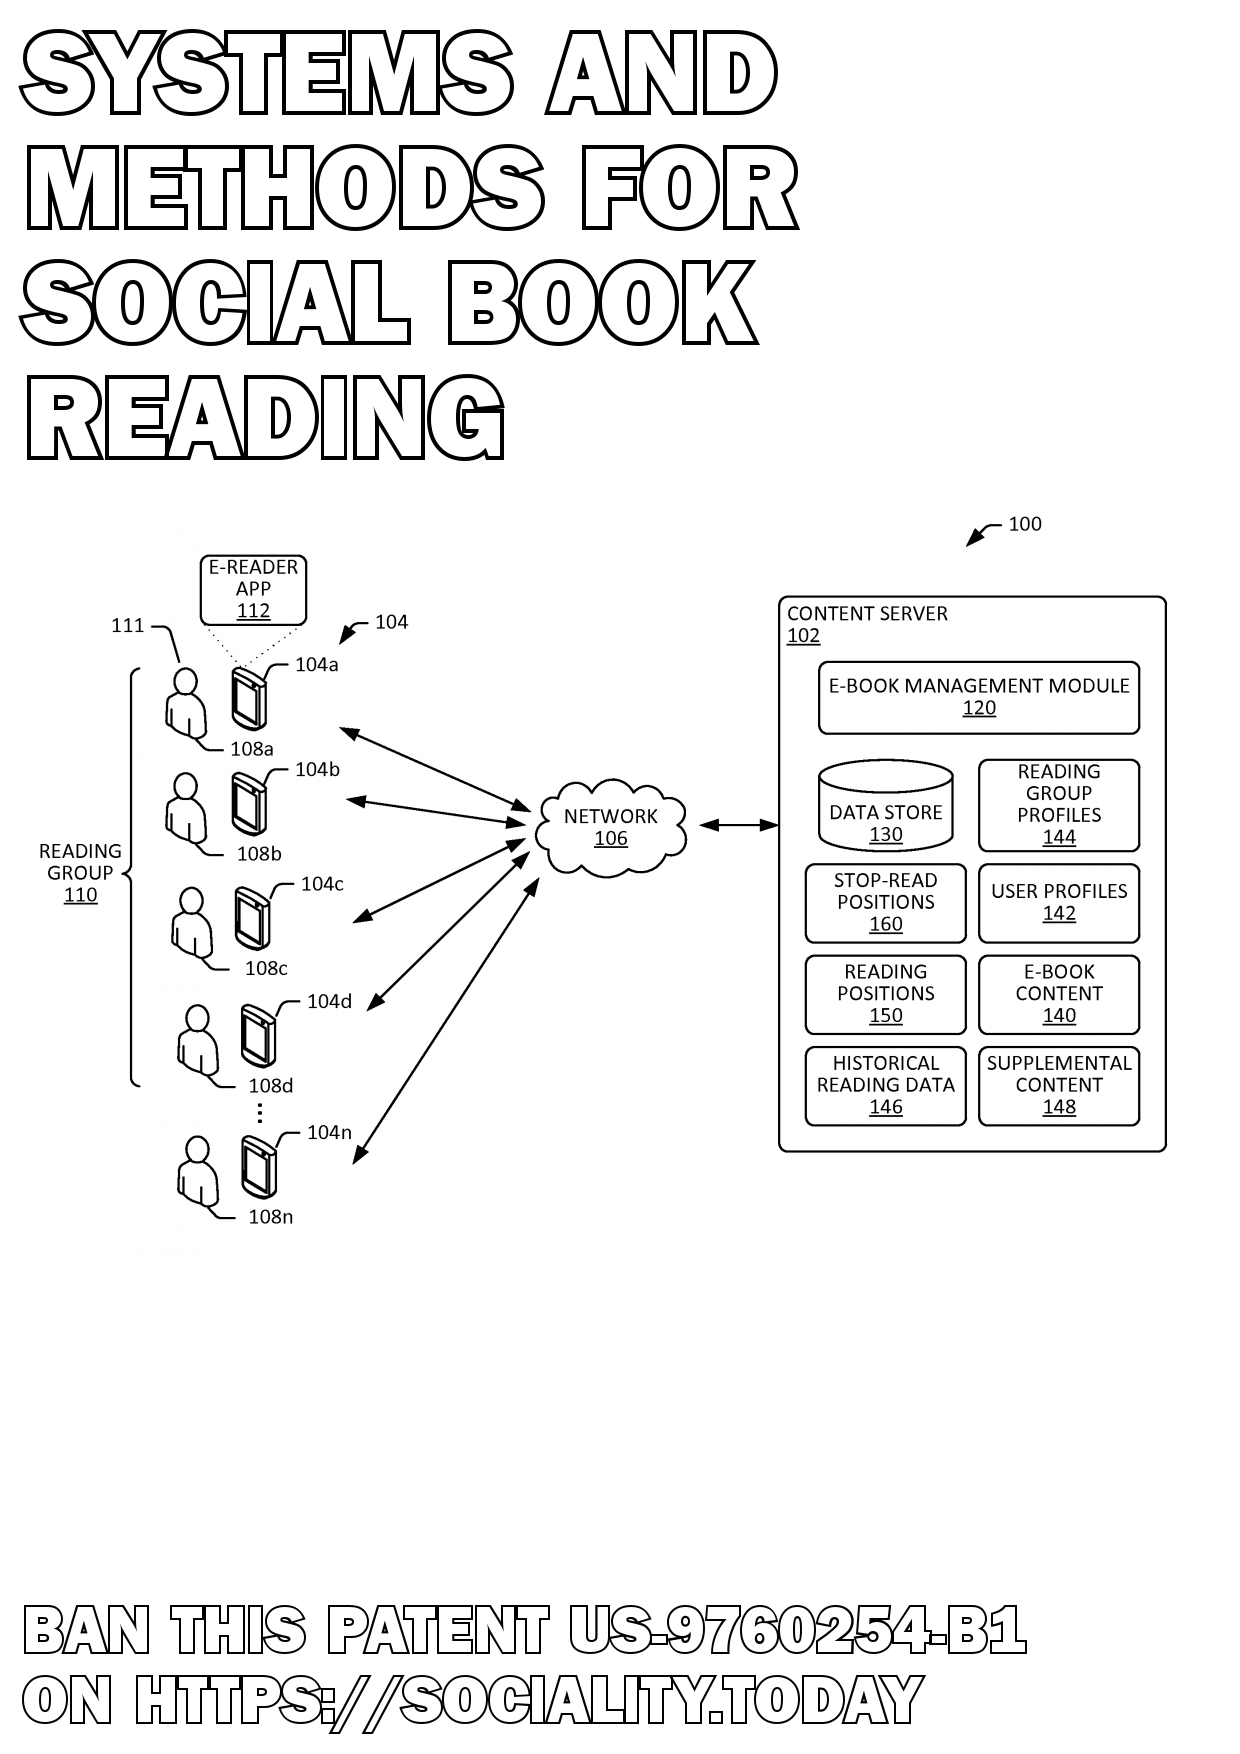 Systems and methods for social book reading  - US-9760254-B1